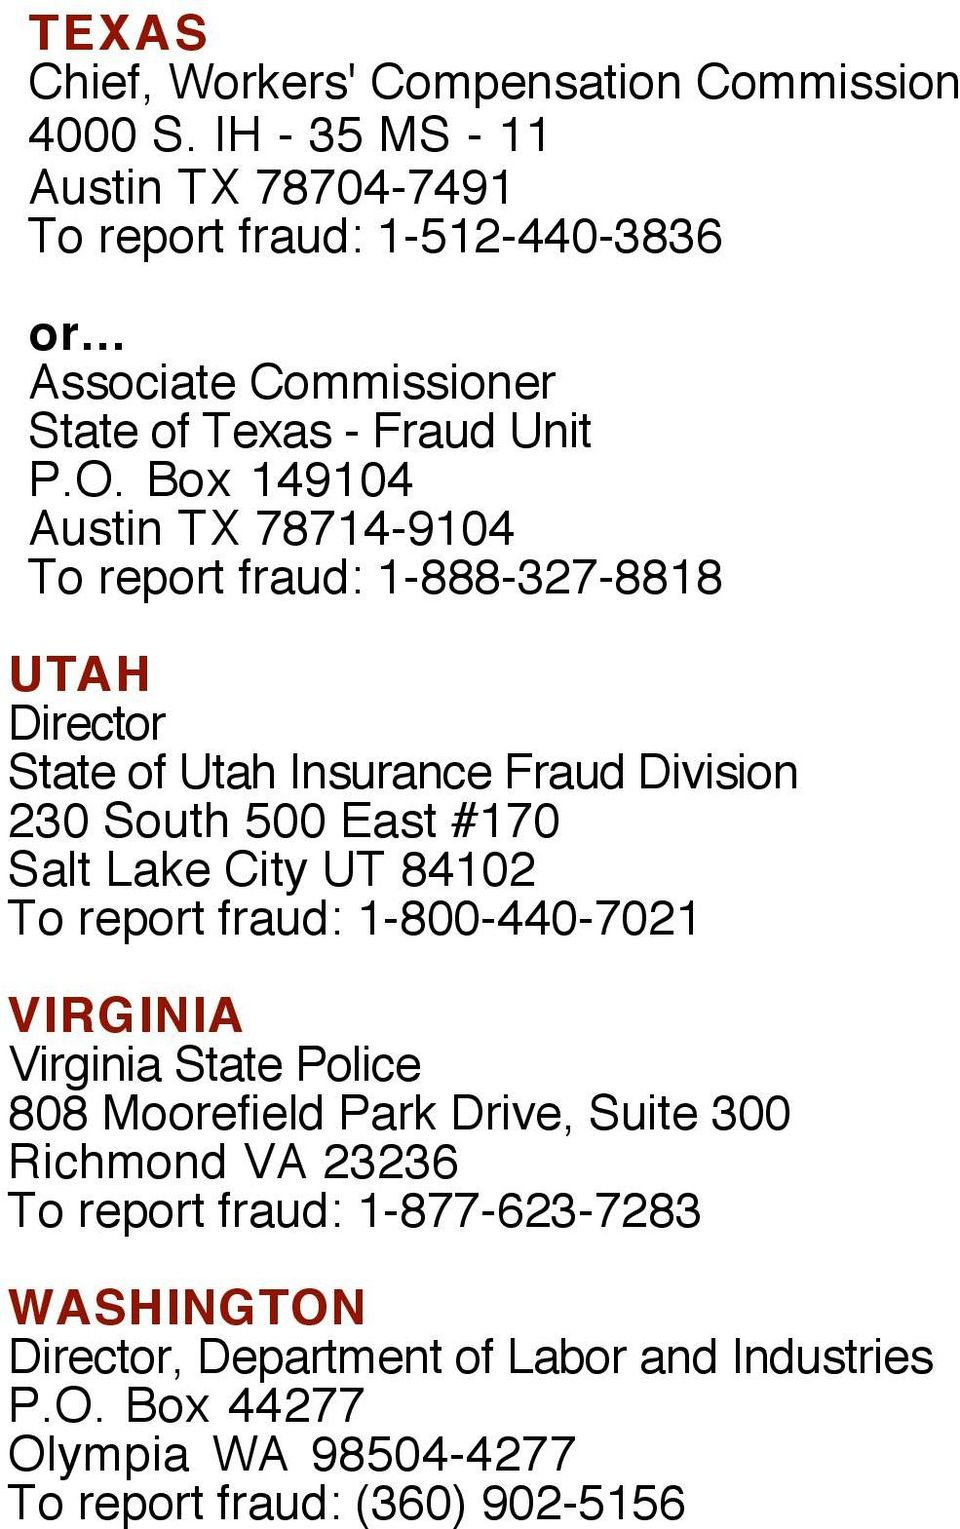 Box 149104 Austin TX 78714-9104 To report fraud: 1-888-327-8818 UTAH Director State of Utah Insurance Fraud Division 230 South 500 East #170 Salt Lake